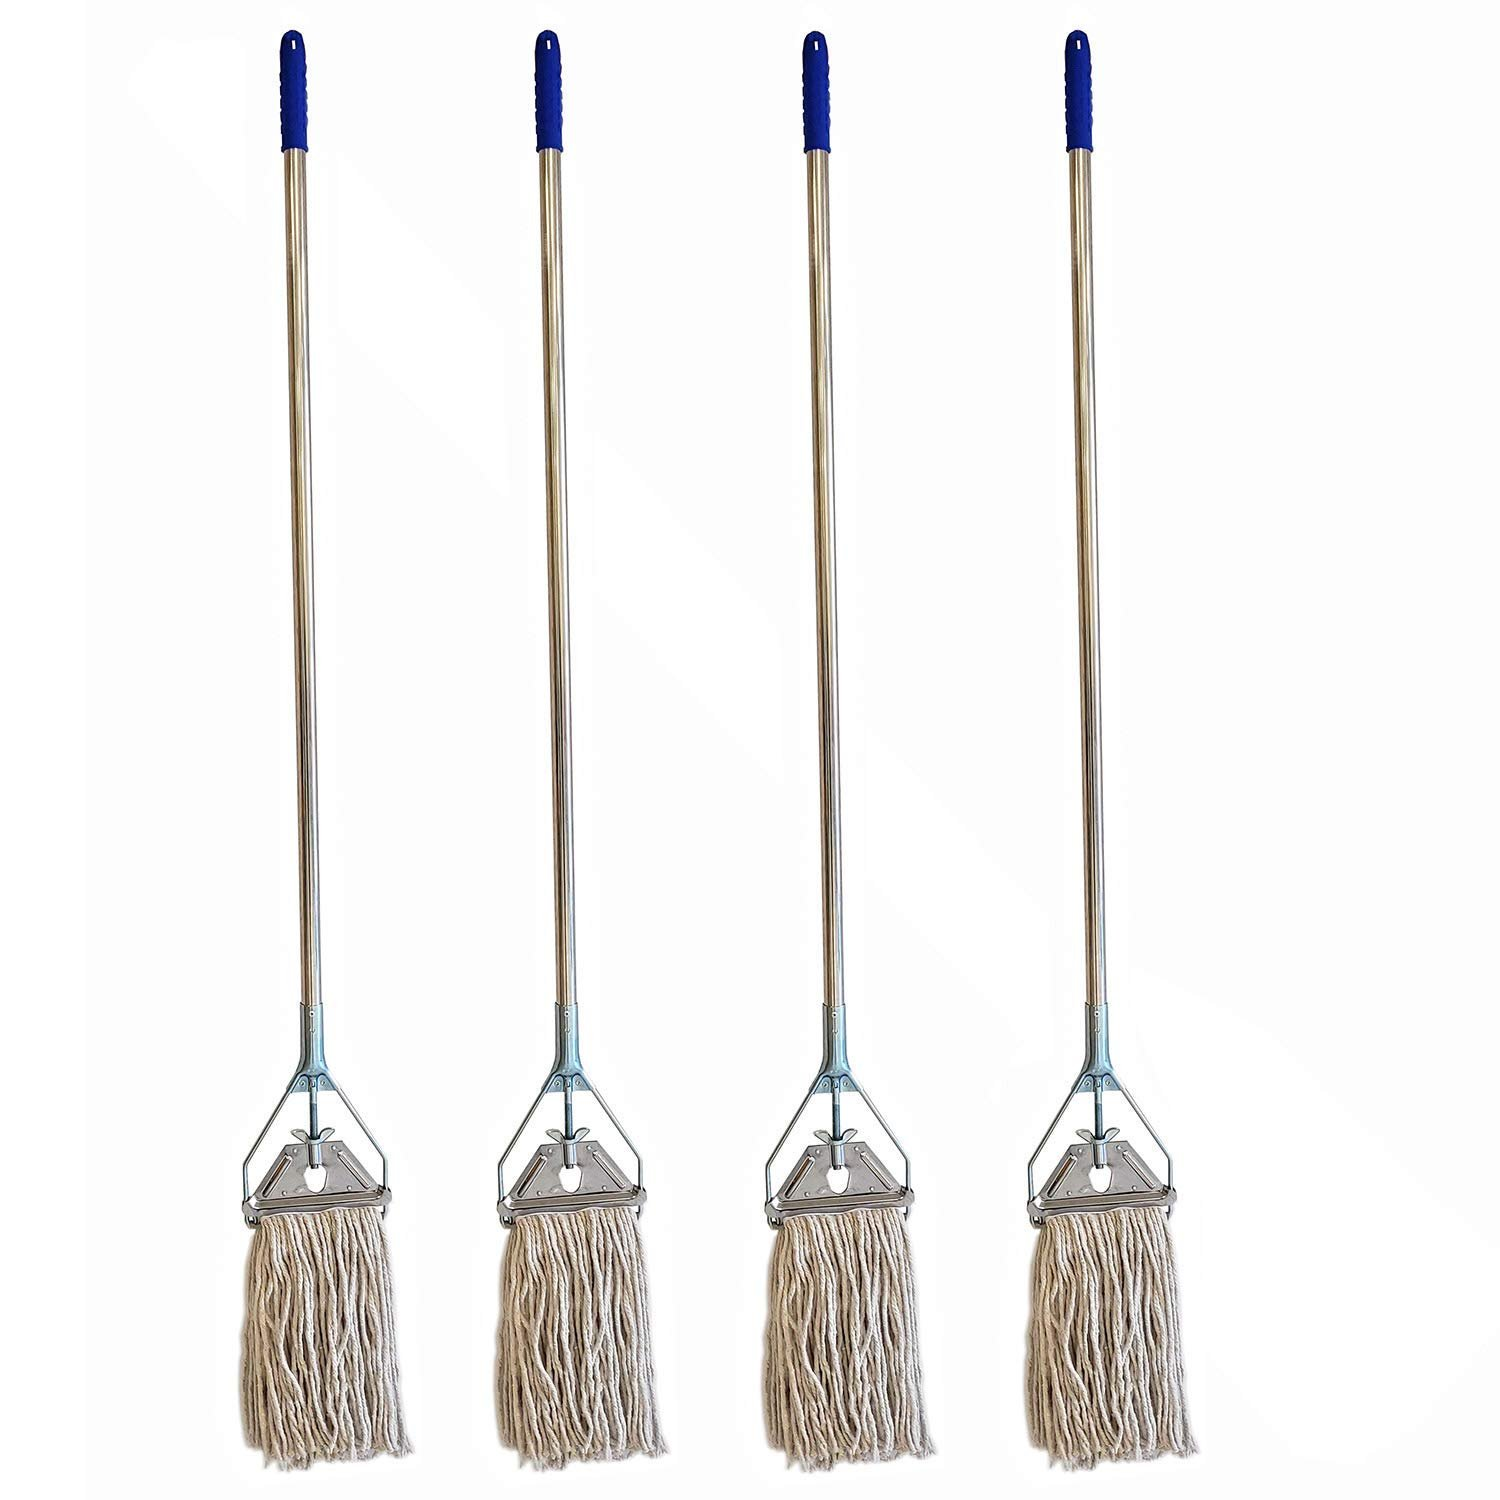 Mop With Head 6 Pack Heavy Duty Premium Industrial Strength Stainless Steel Mop With Handle With Cotton Mop Head for Floor Cleaning-Kitchen Home Office Janitorial Industrial Warehouse